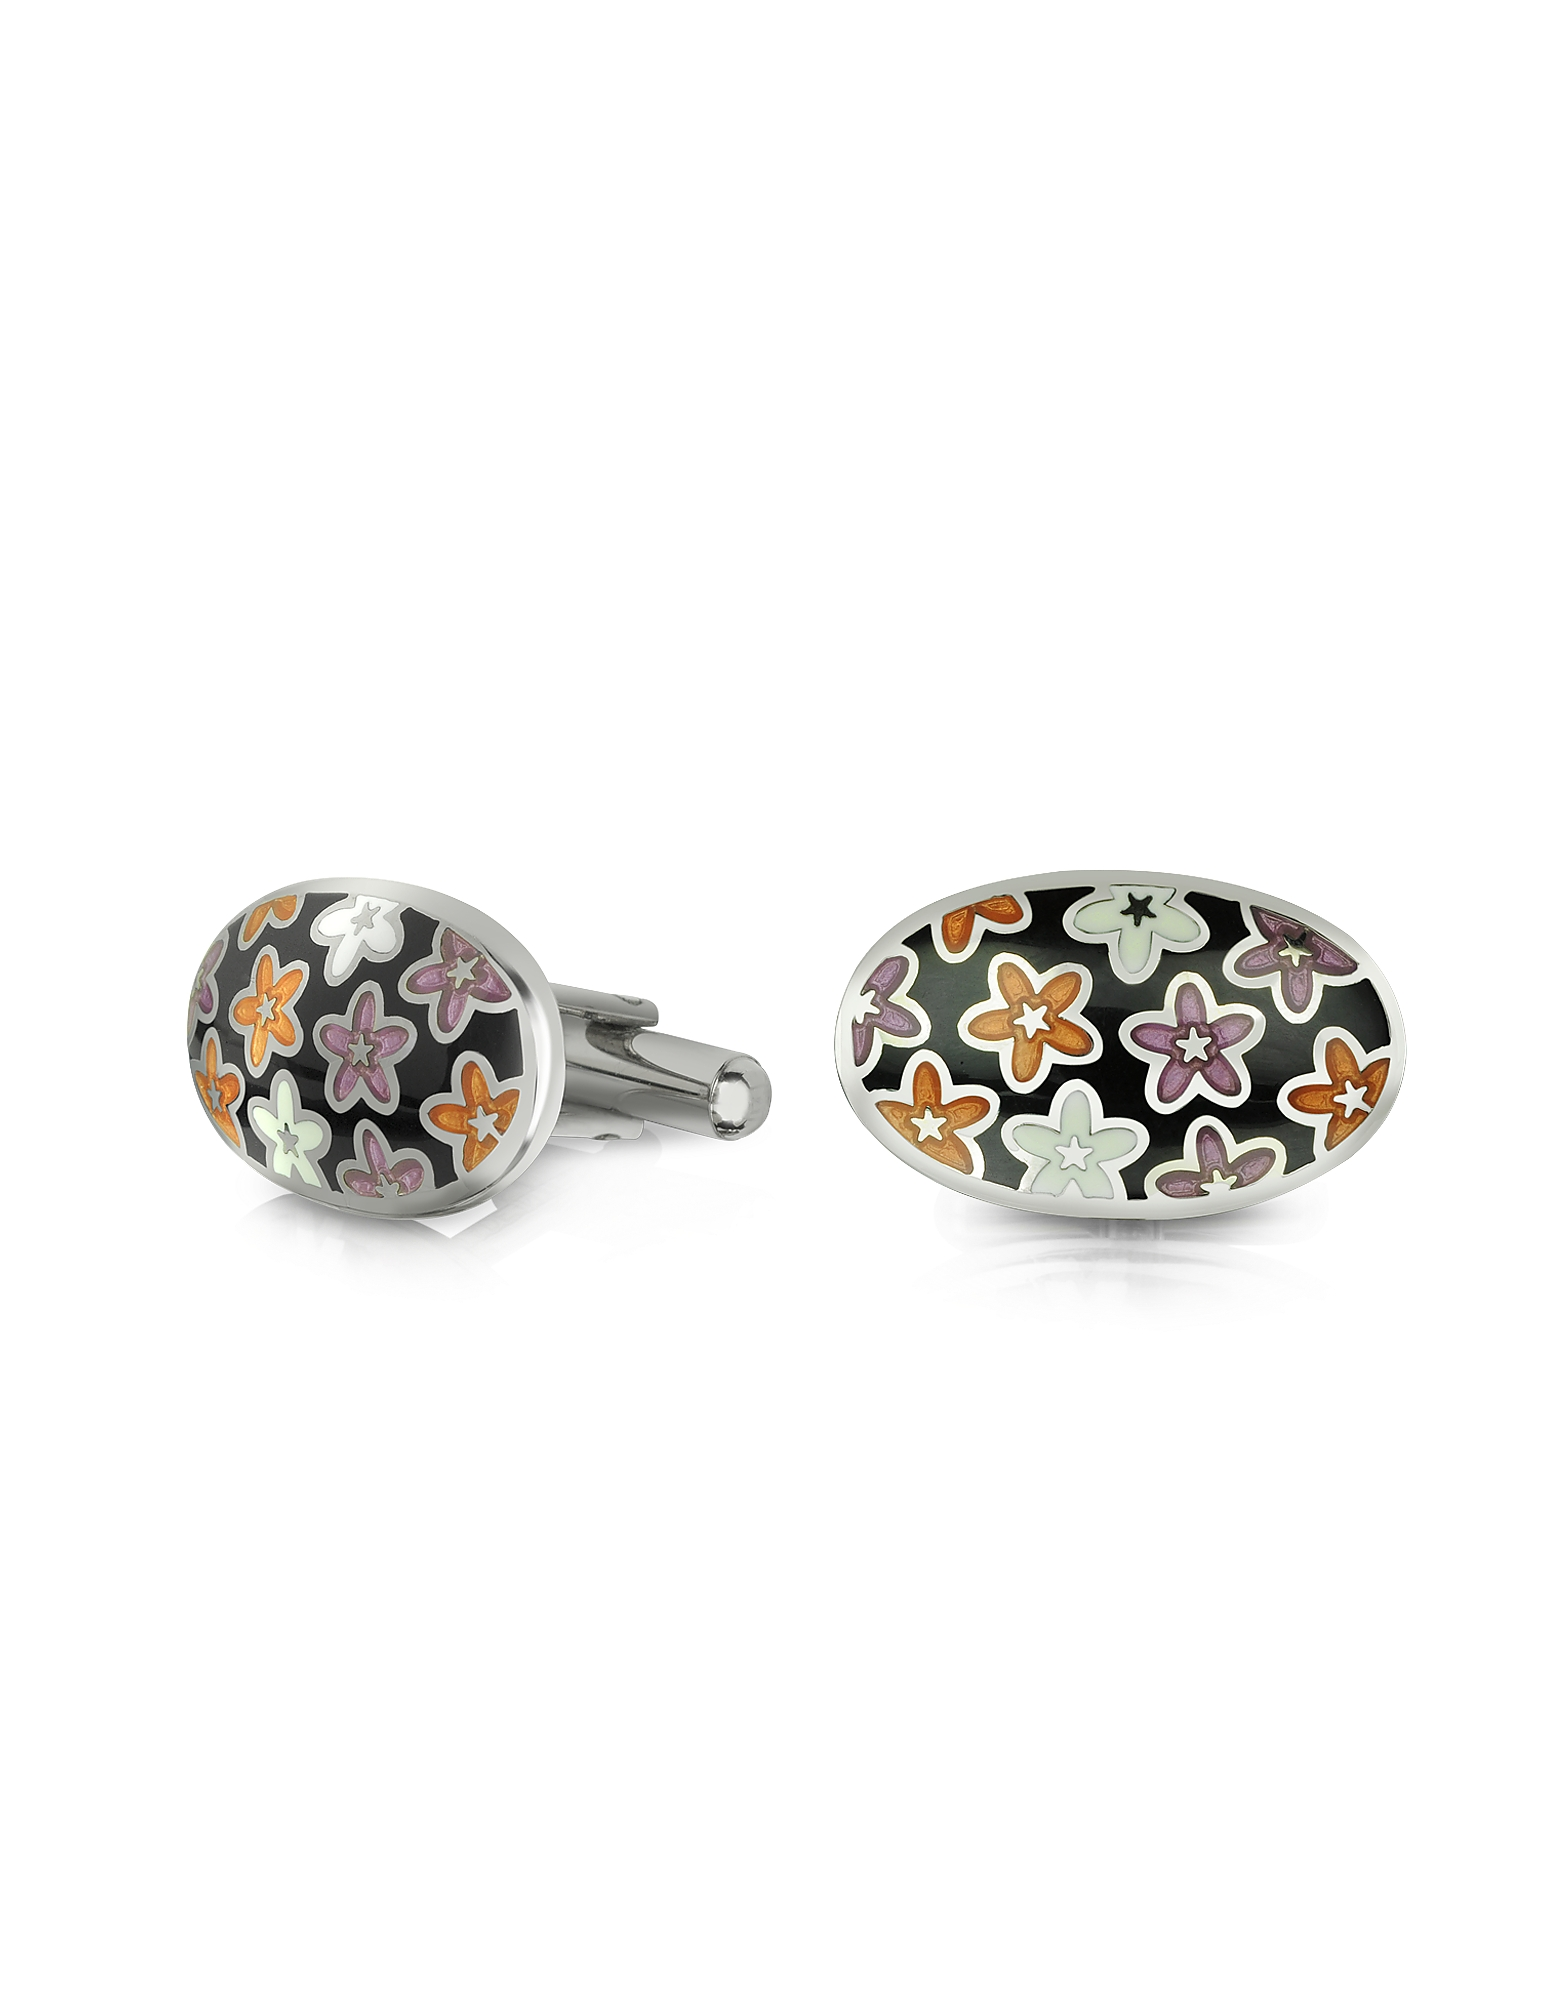 Forzieri Designer Cufflinks, Dandy - Metal and Enamel Oval Cufflinks